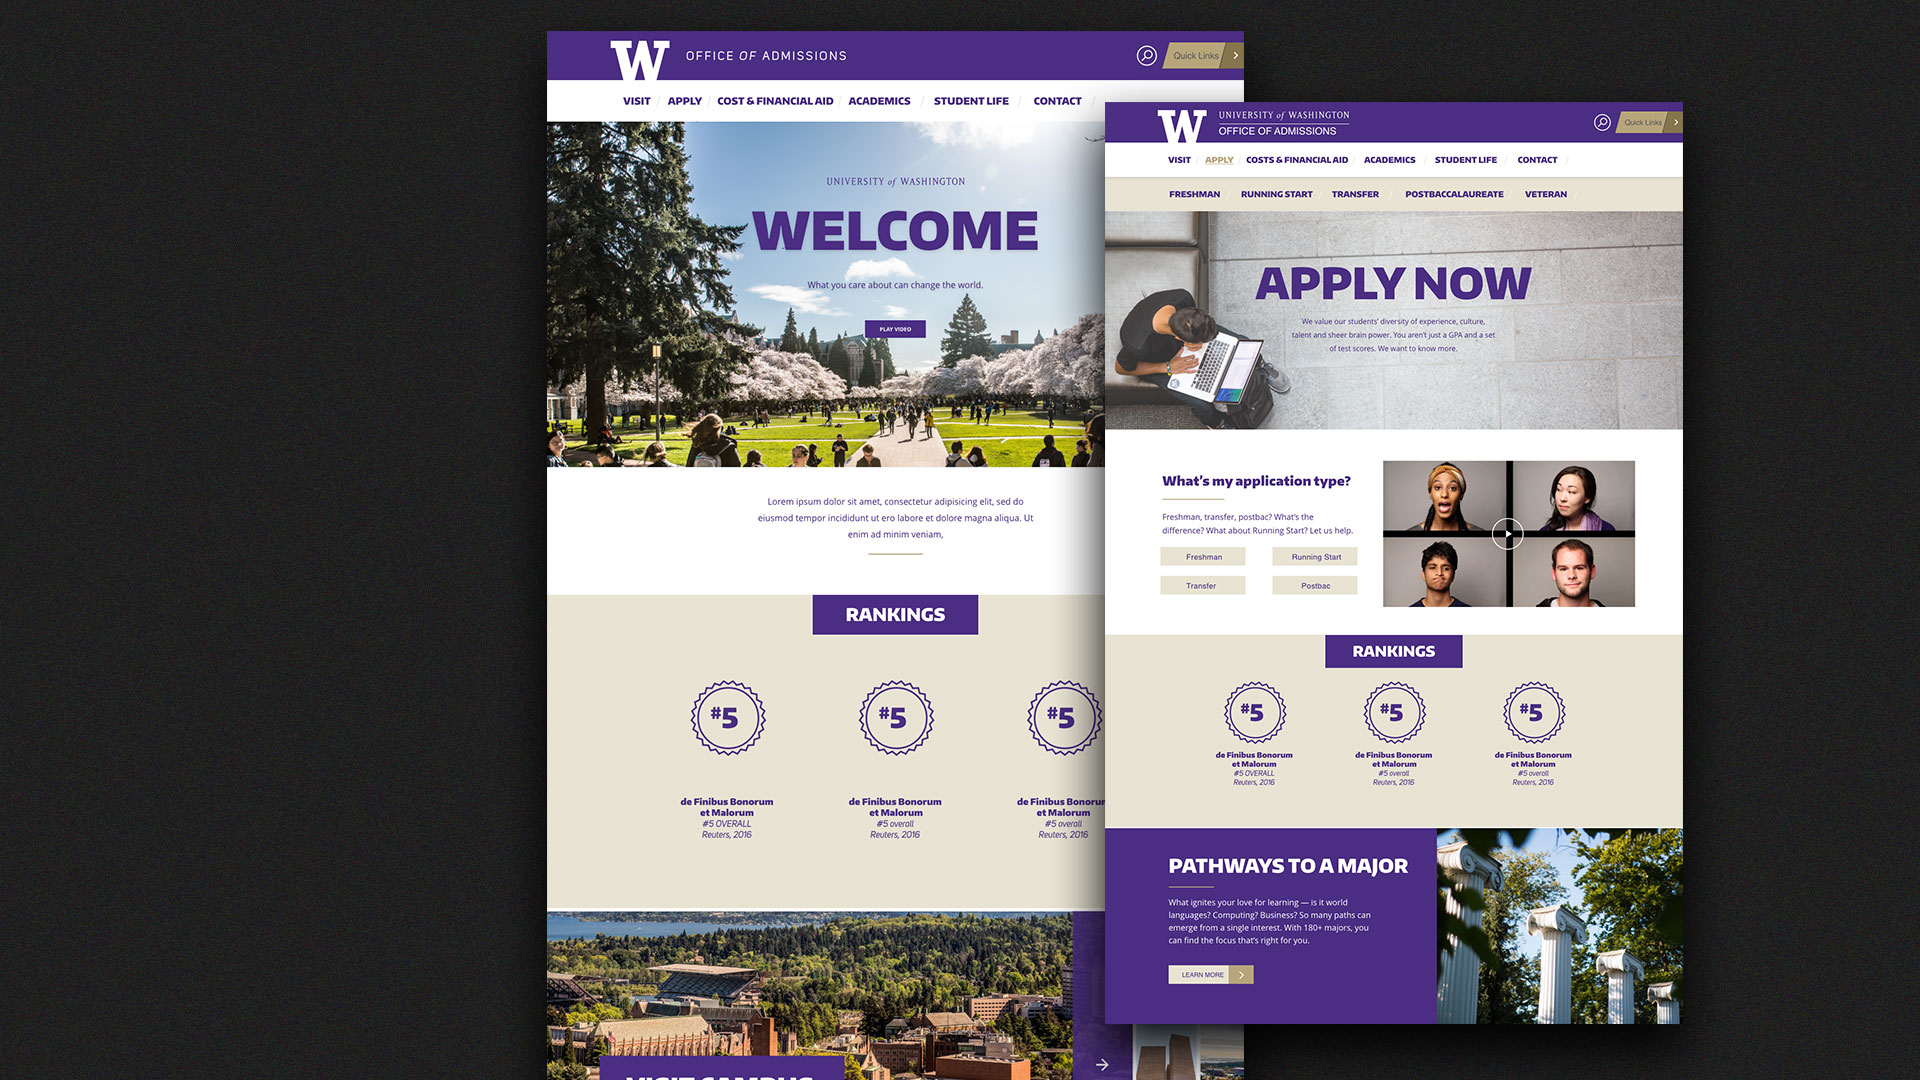 Solutions for Undergrads - Admitting UW's largest freshmen class is 157 years.